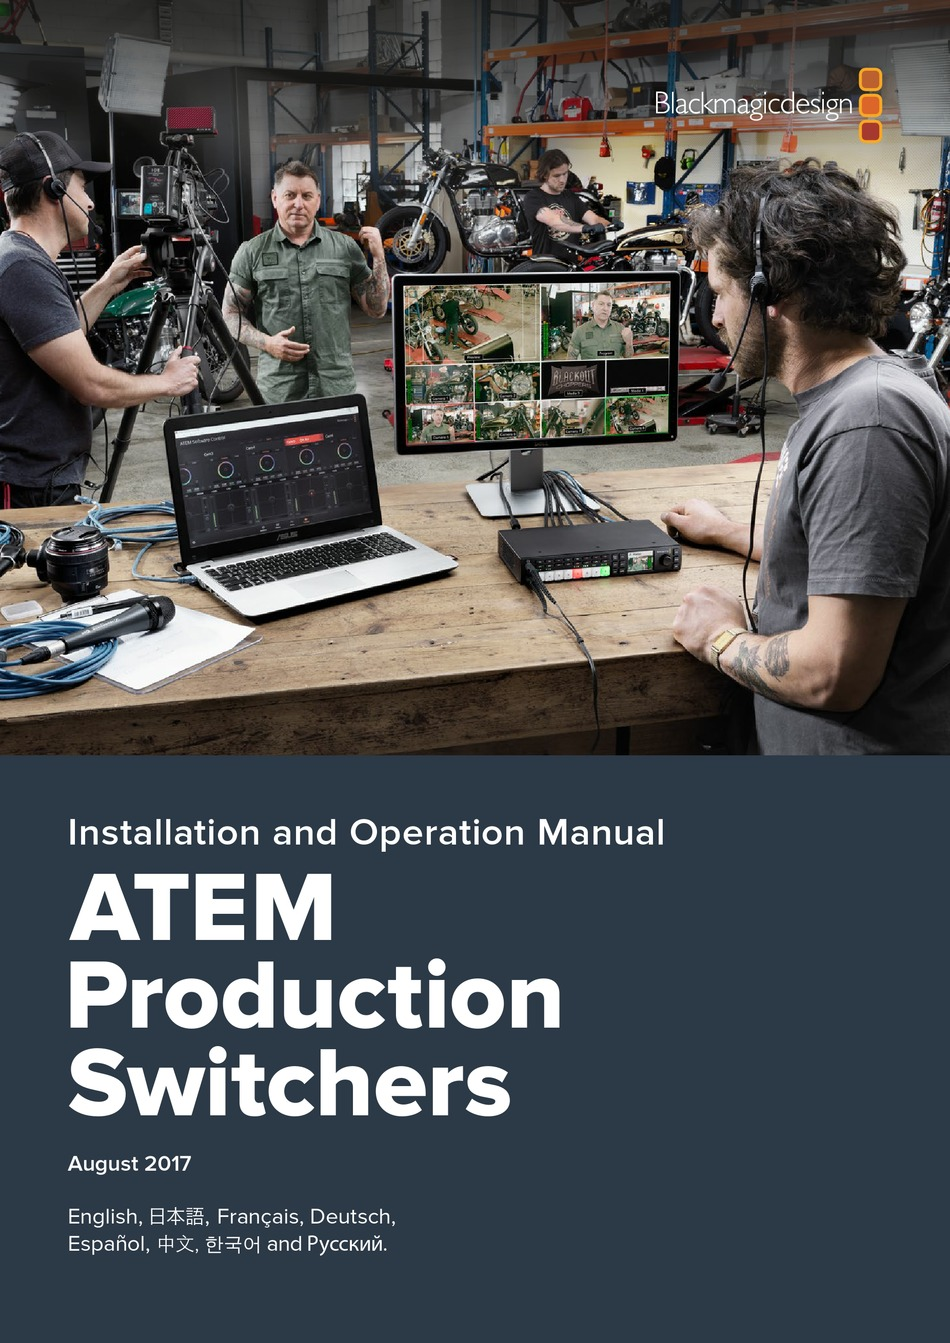 Blackmagicdesign Atem Production Studio 4k Installation And Operation Manual Pdf Download Manualslib